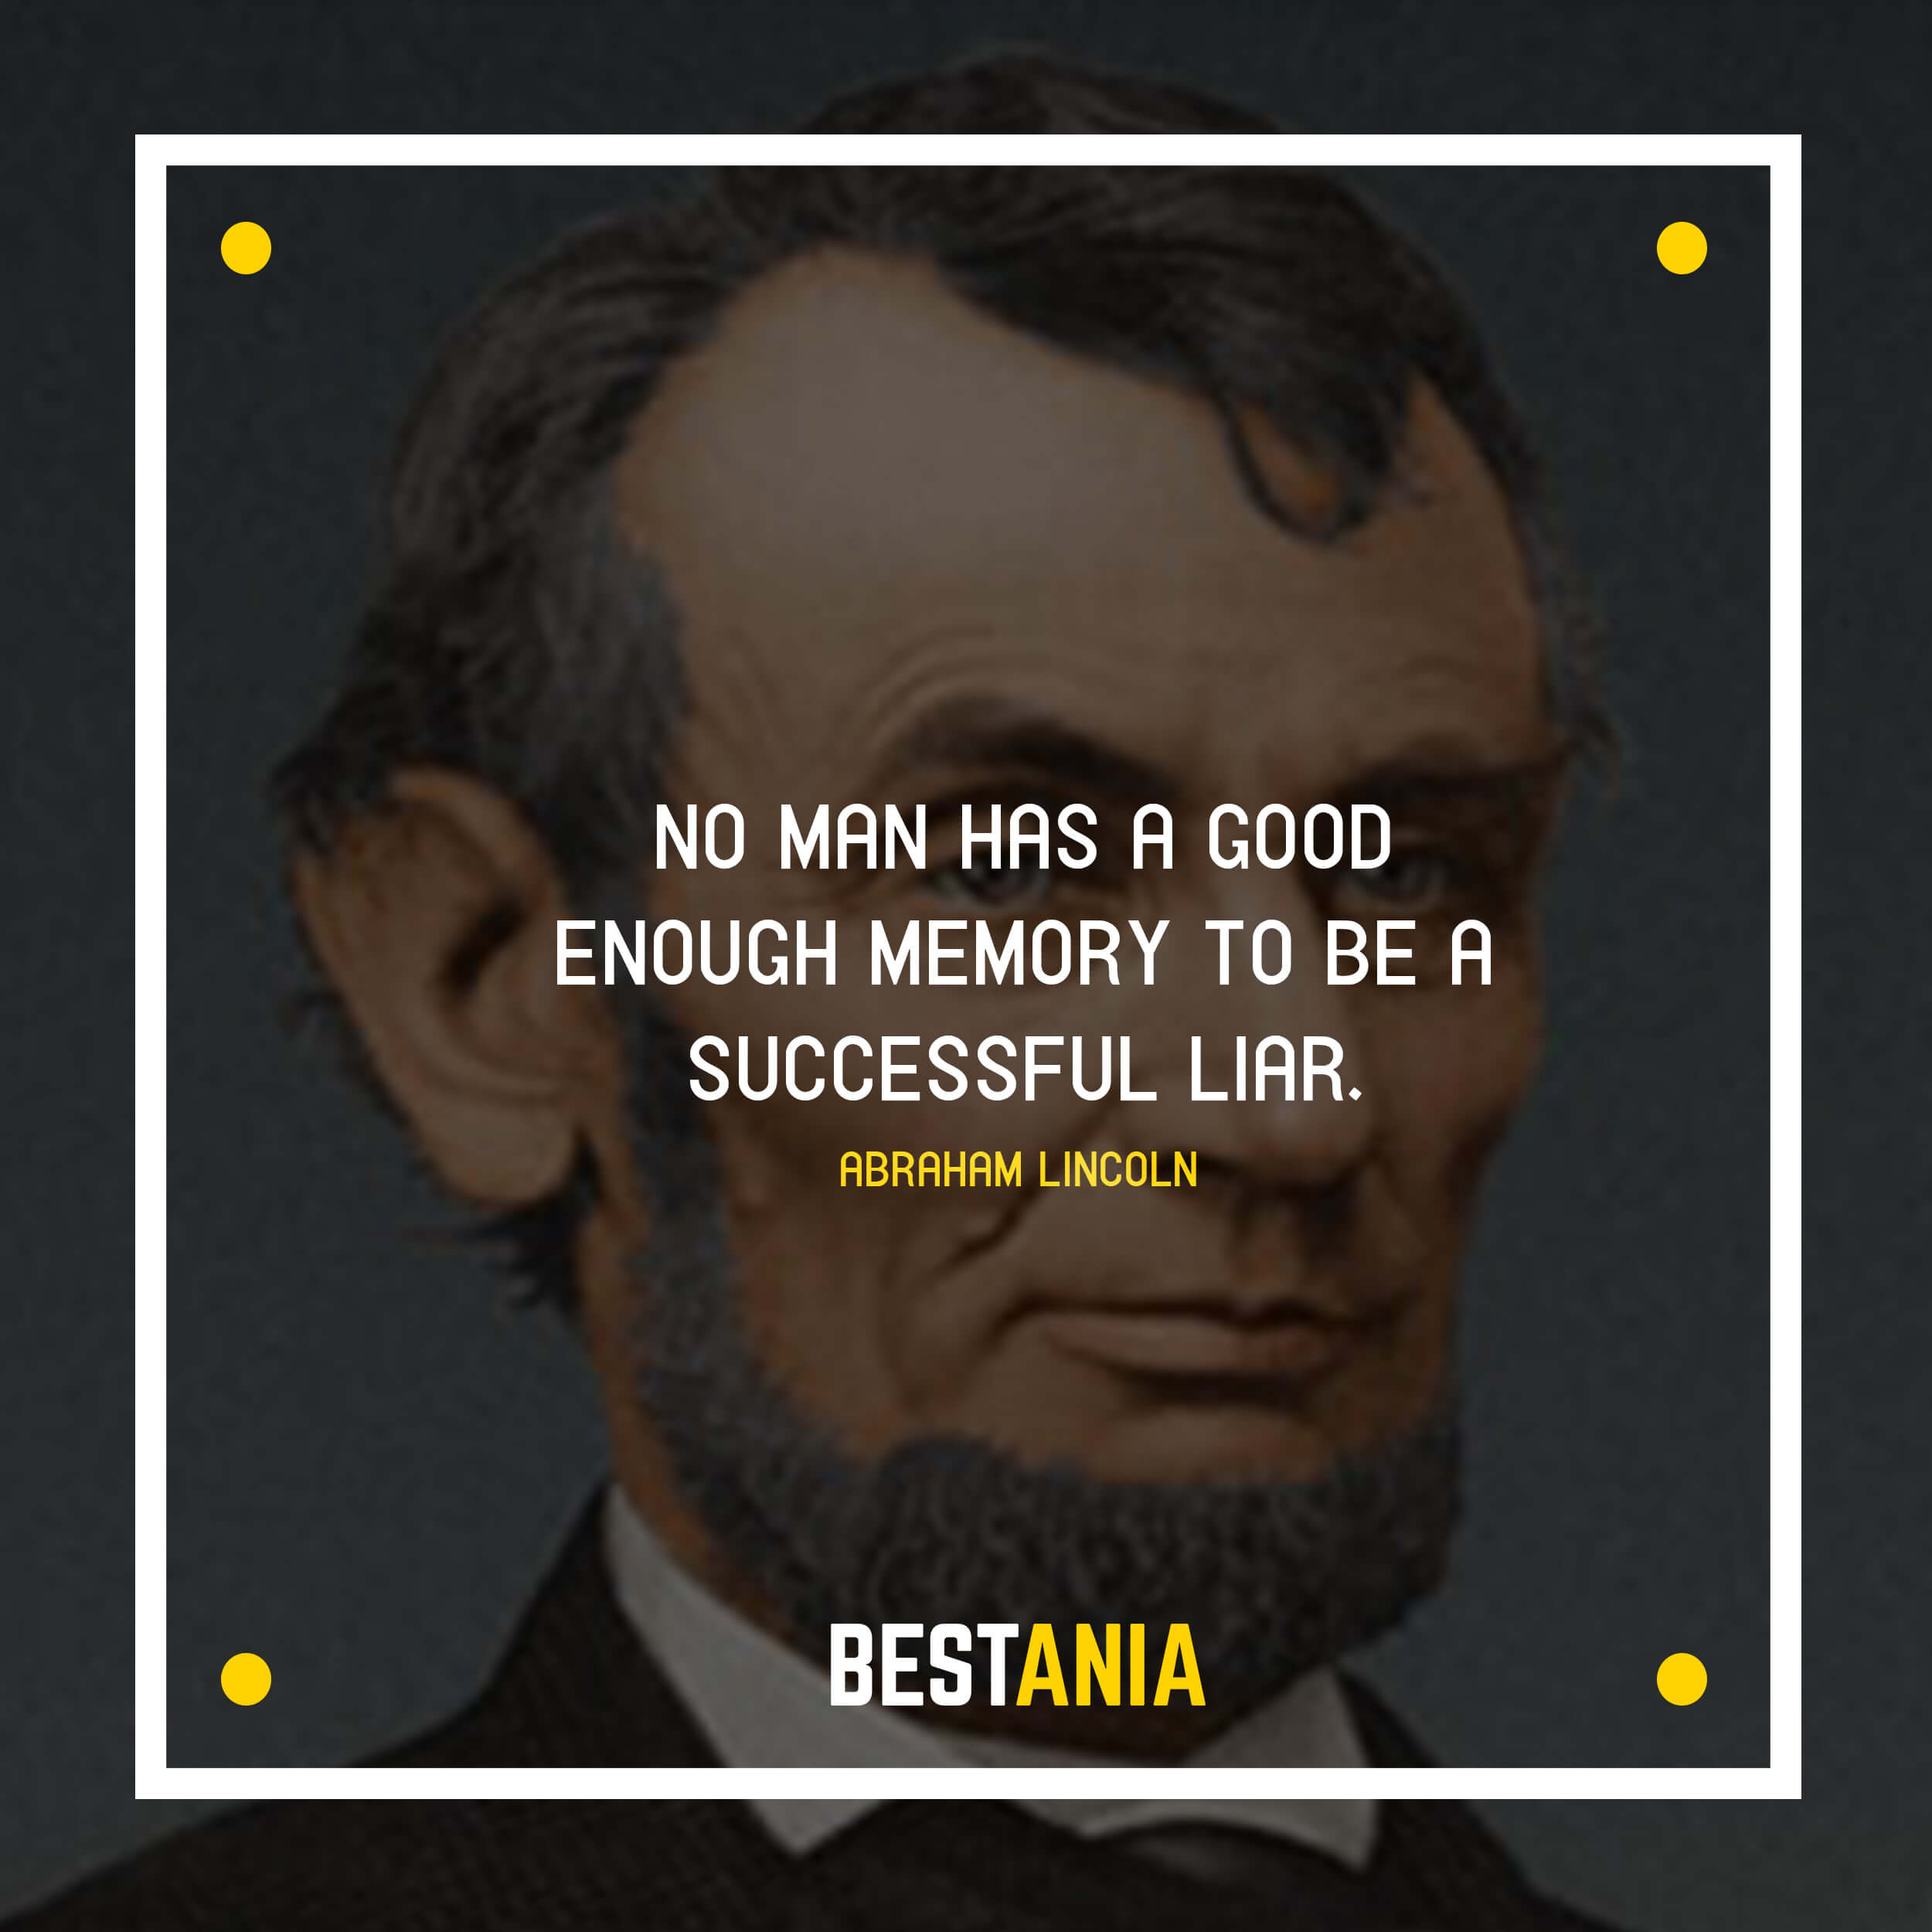 """NO MAN HAS A GOOD ENOUGH MEMORY TO BE A SUCCESSFUL LIAR.""  ABRAHAM LINCOLN"